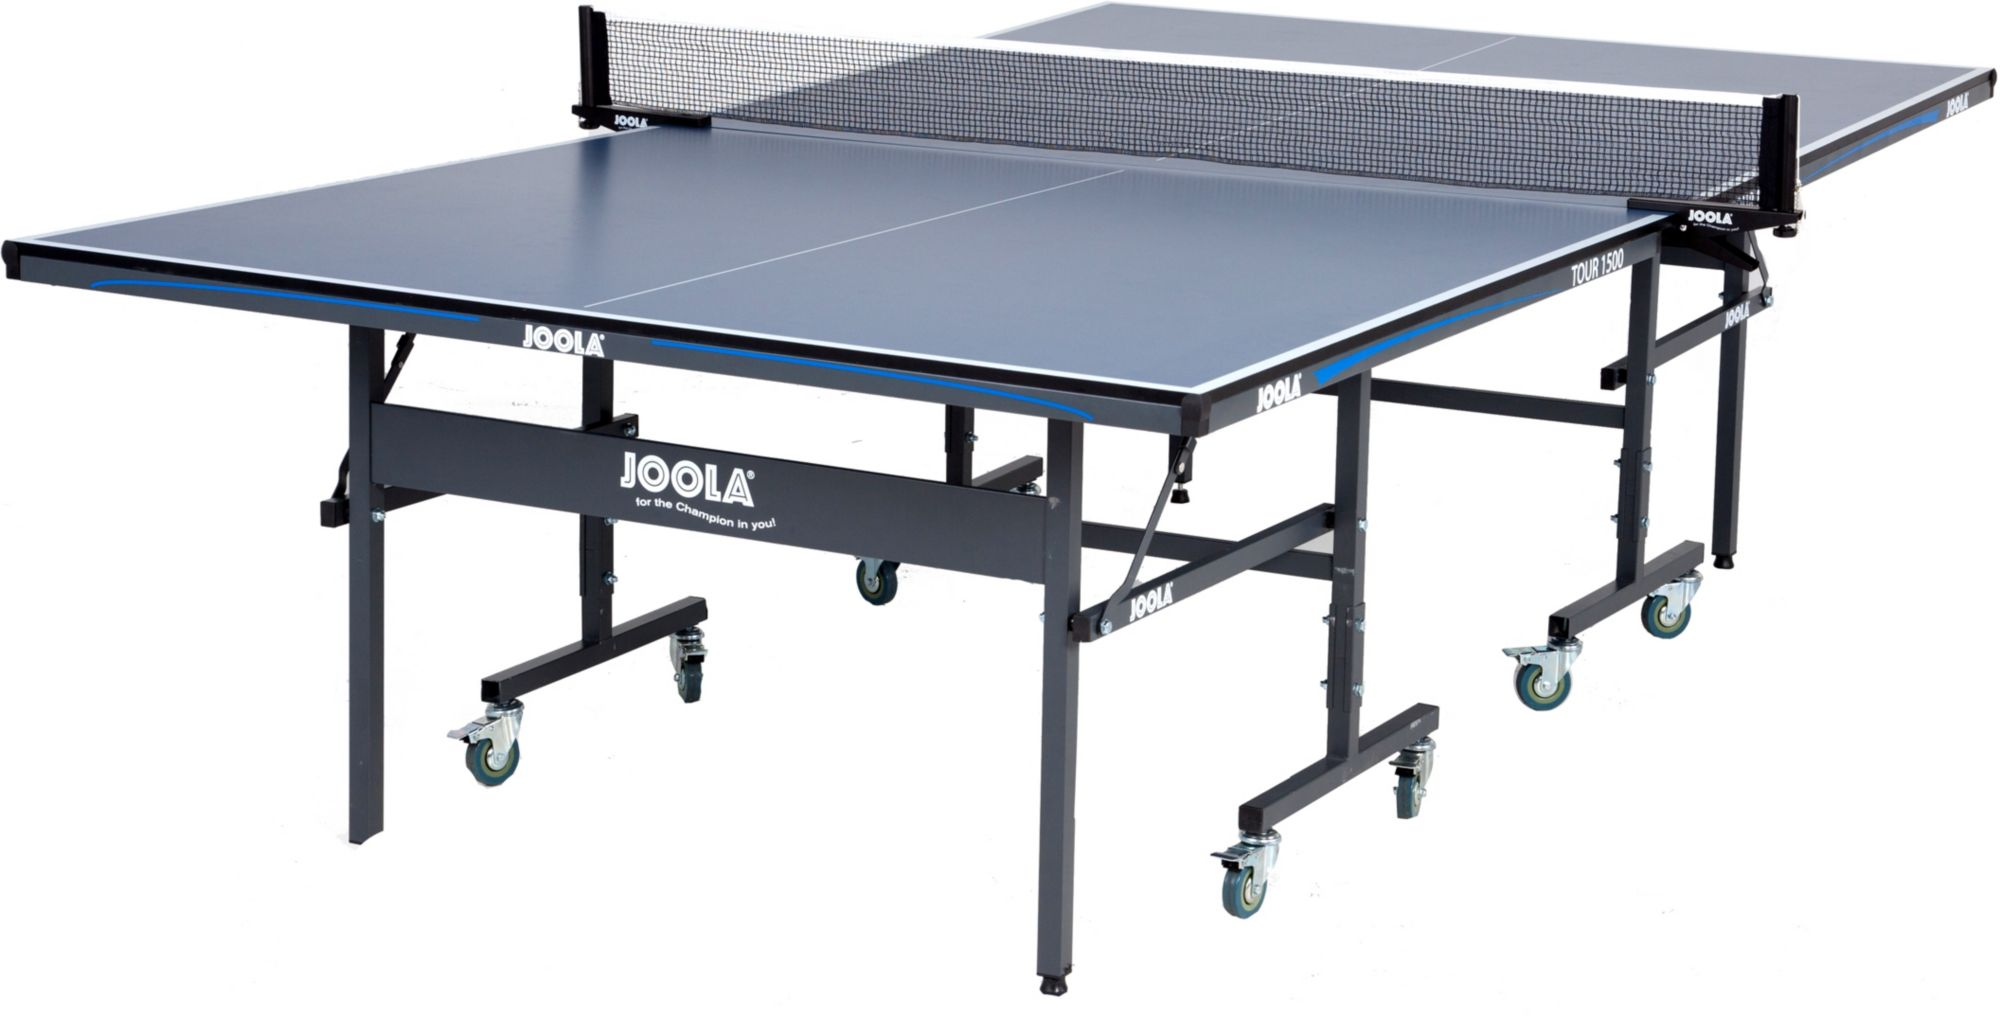 Joola Tour 1500 Indoor Table Tennis Table With Net Set